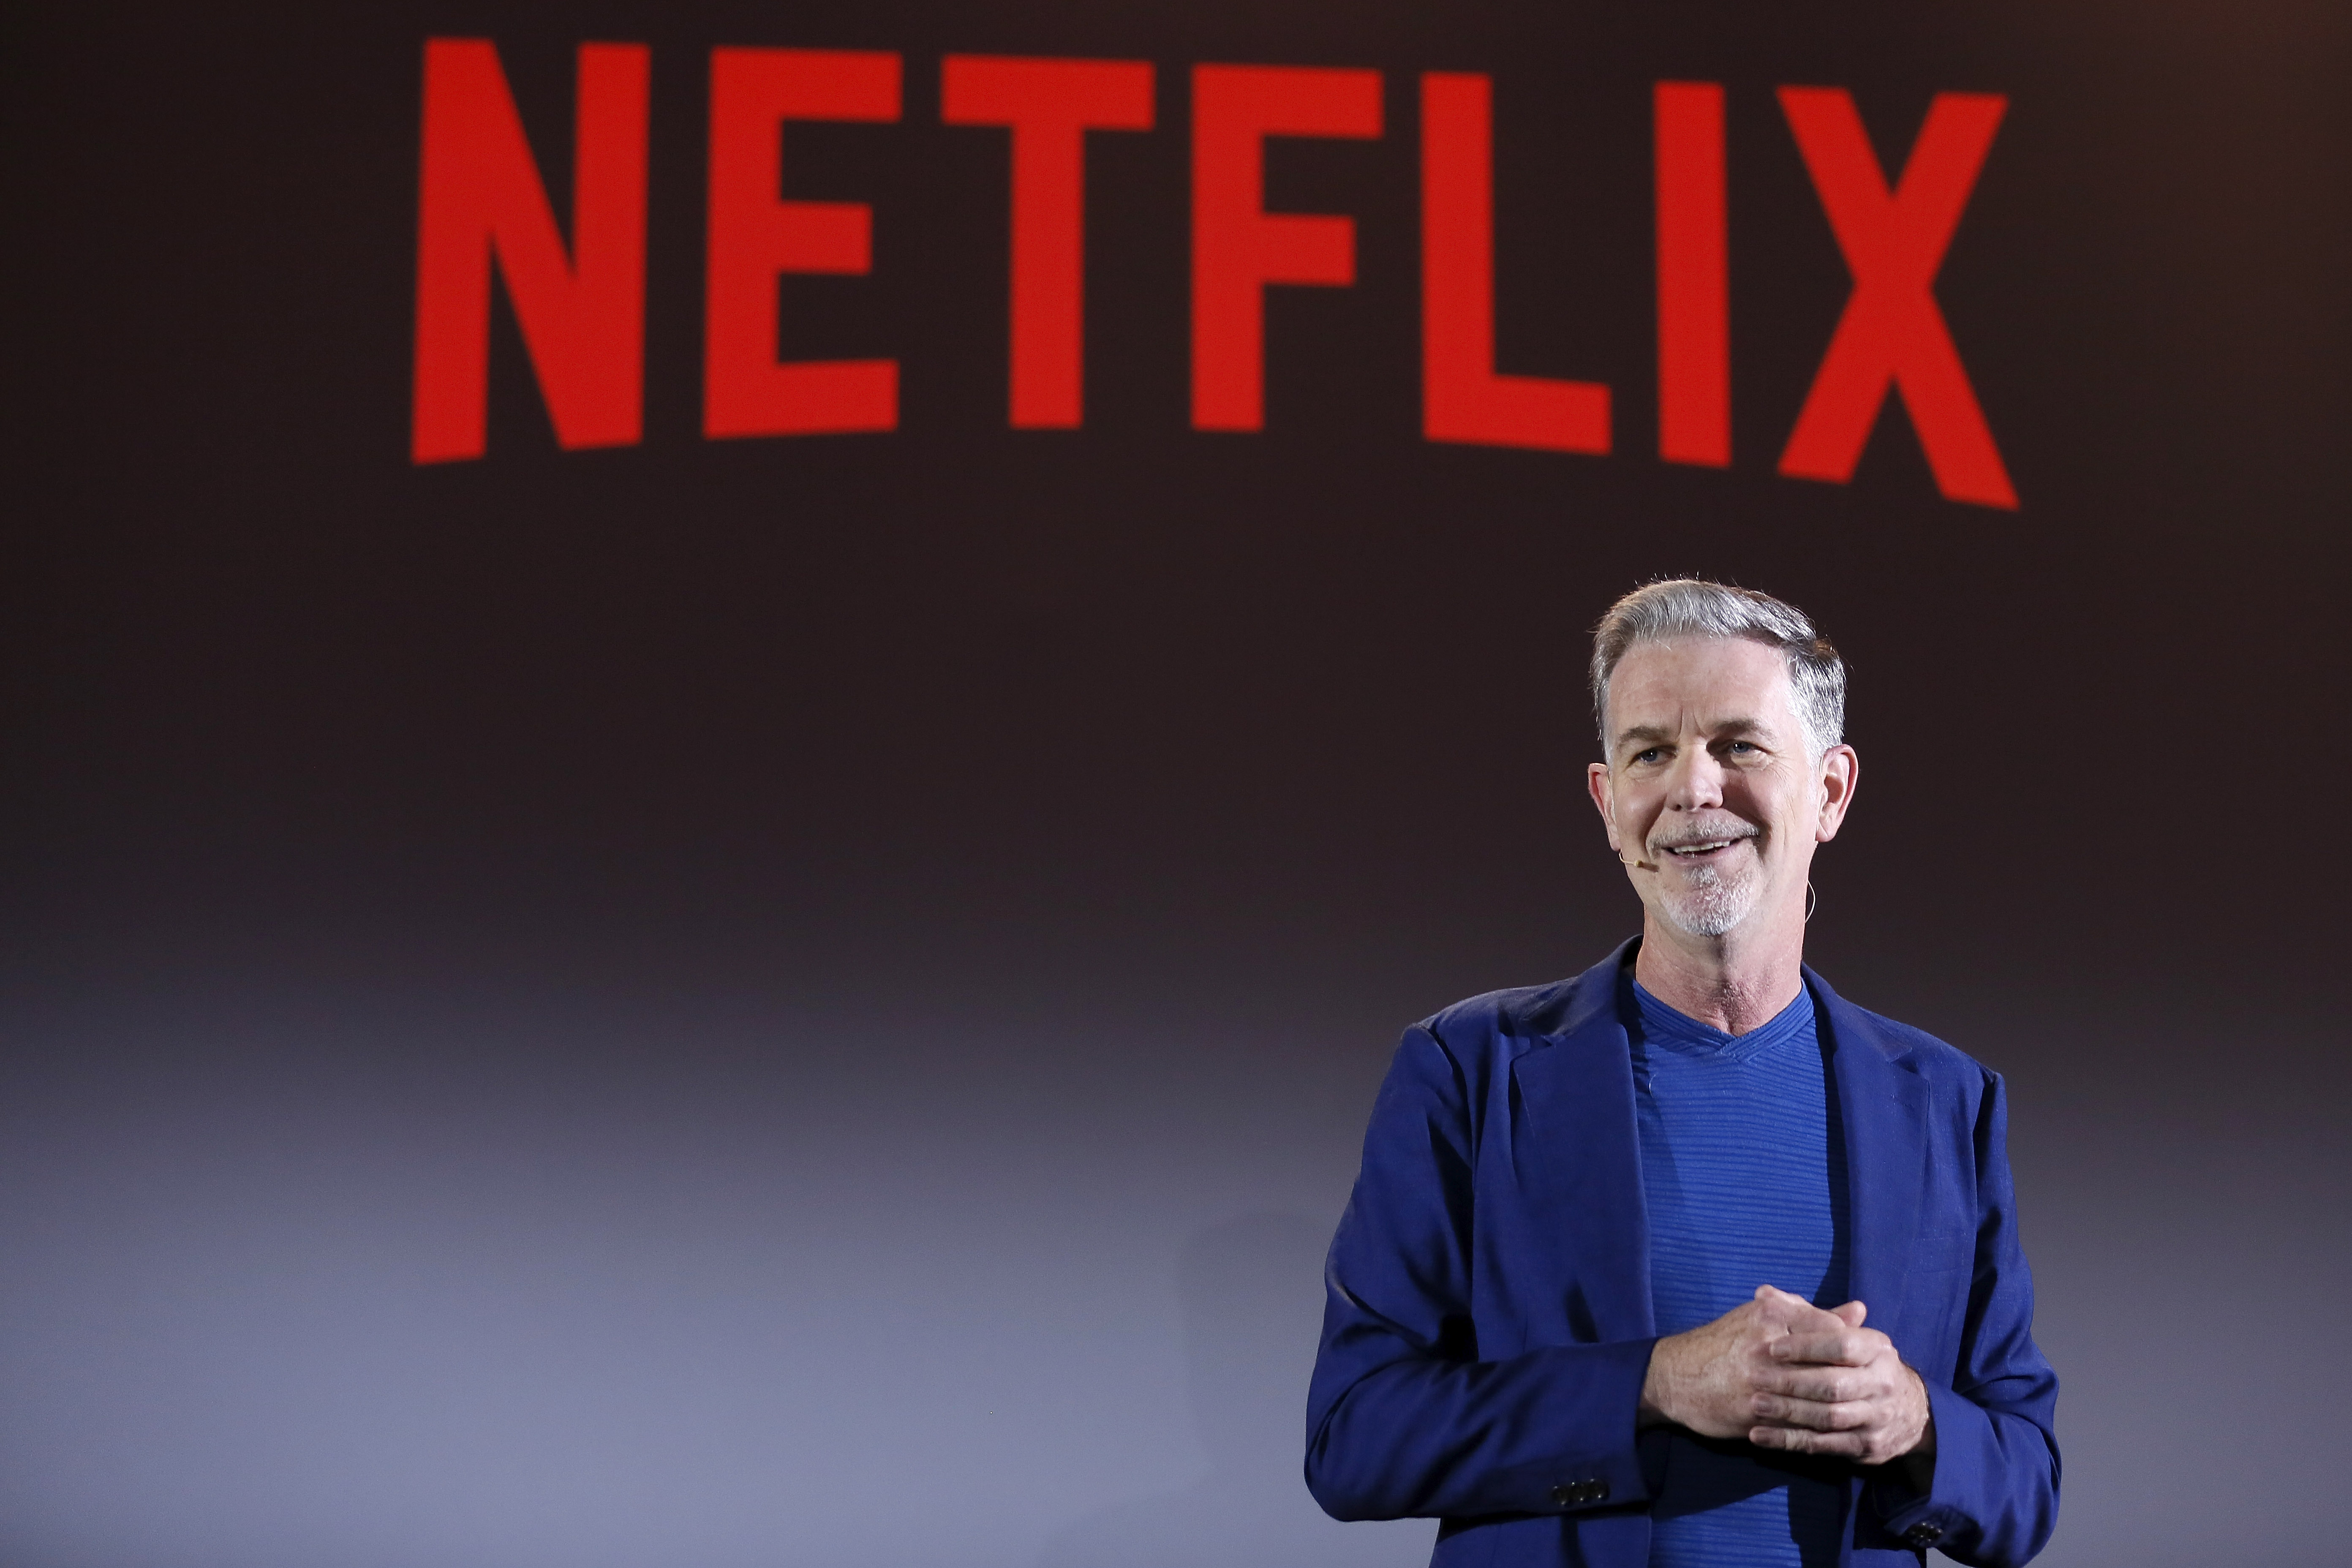 """Reed Hastings onstage in front of a sign reading """"Netflix."""""""